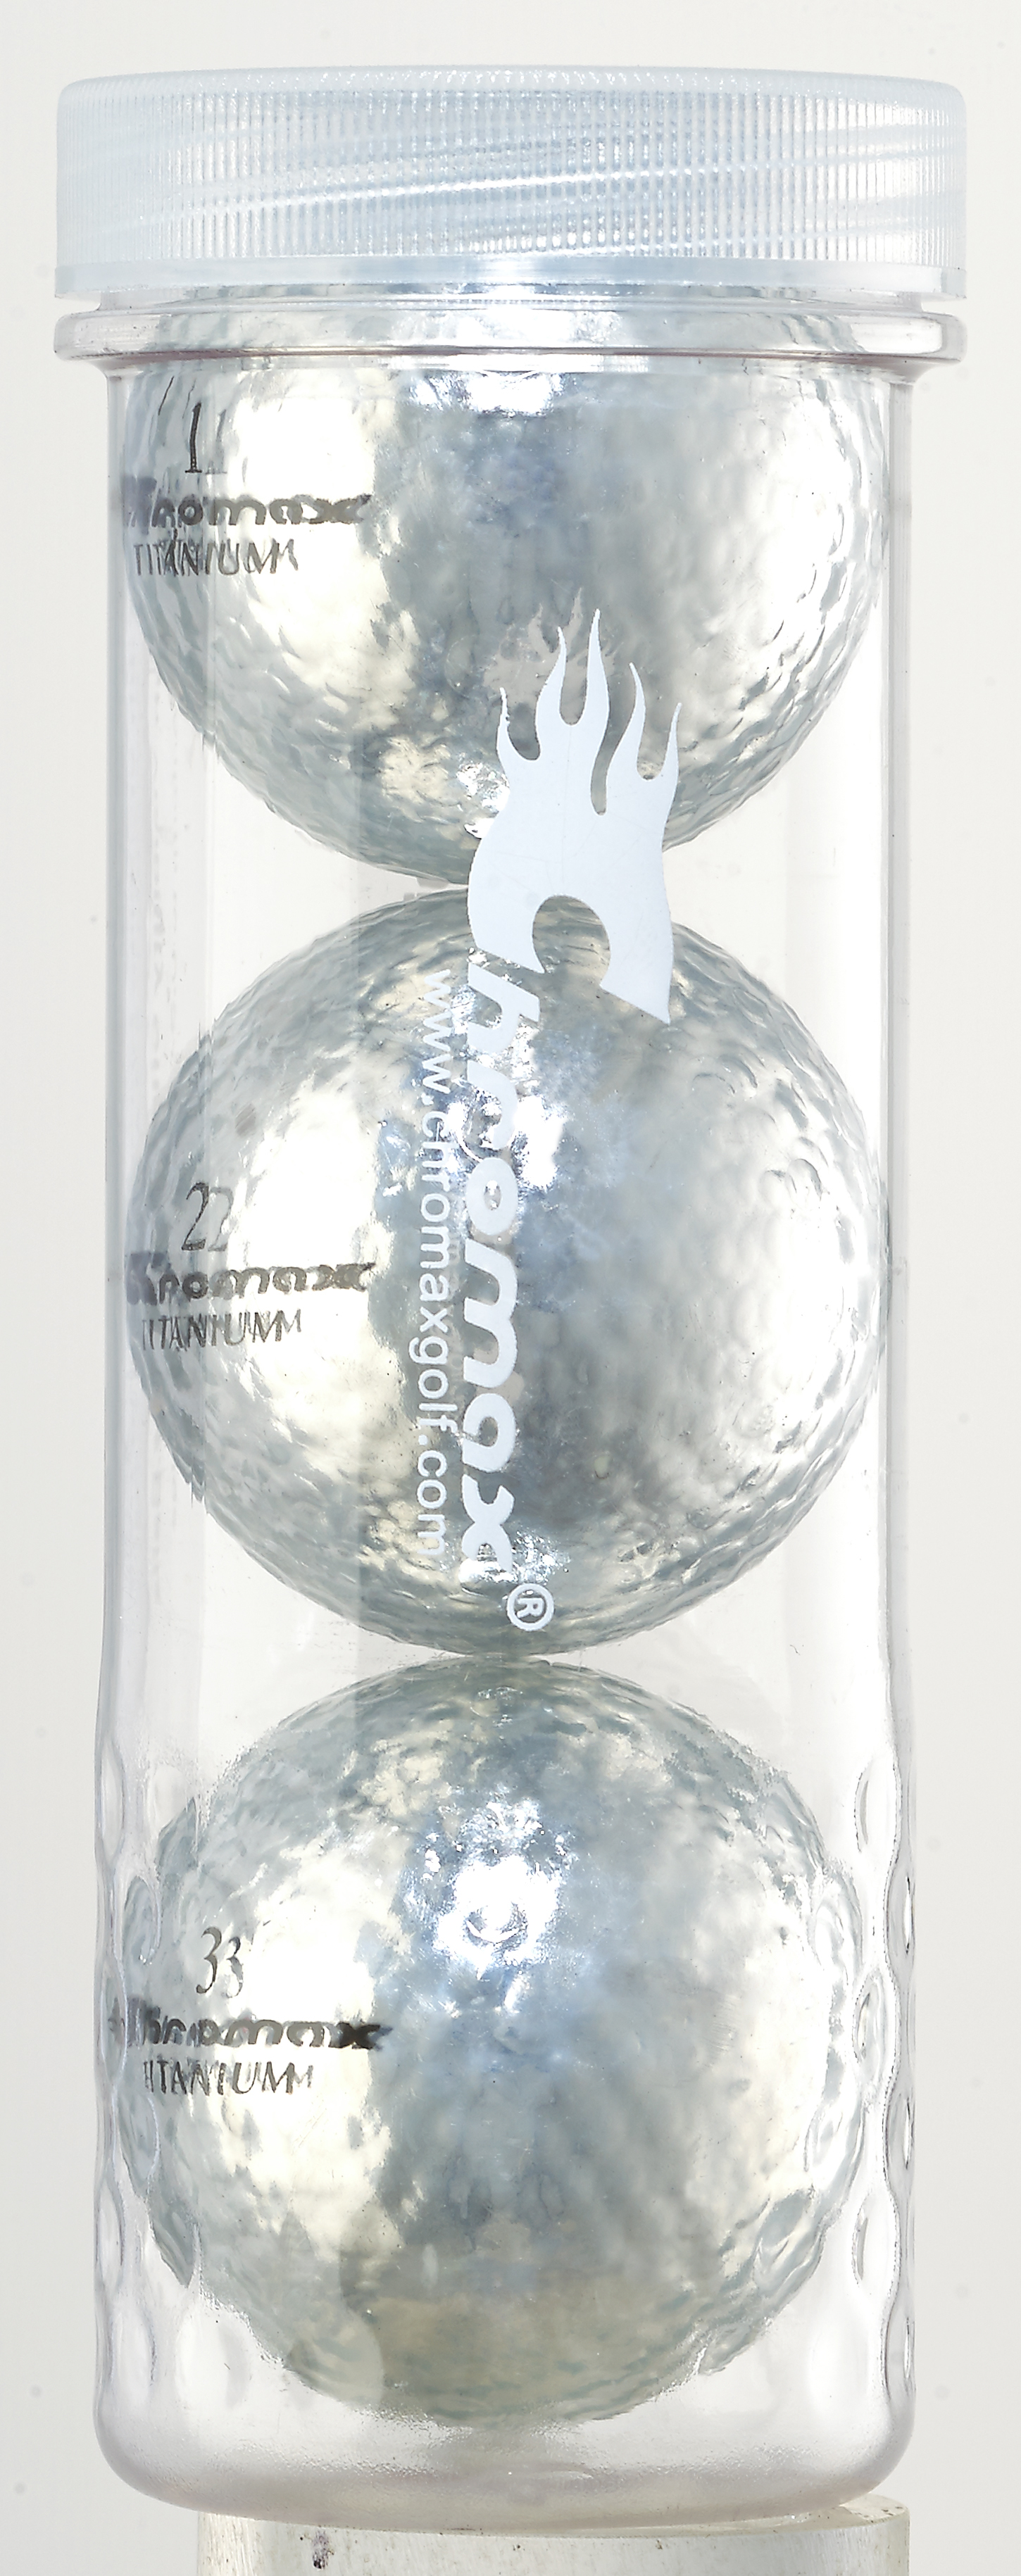 Silver Golf Balls - Chromax M1x 3 Ball Tube CM13SIL